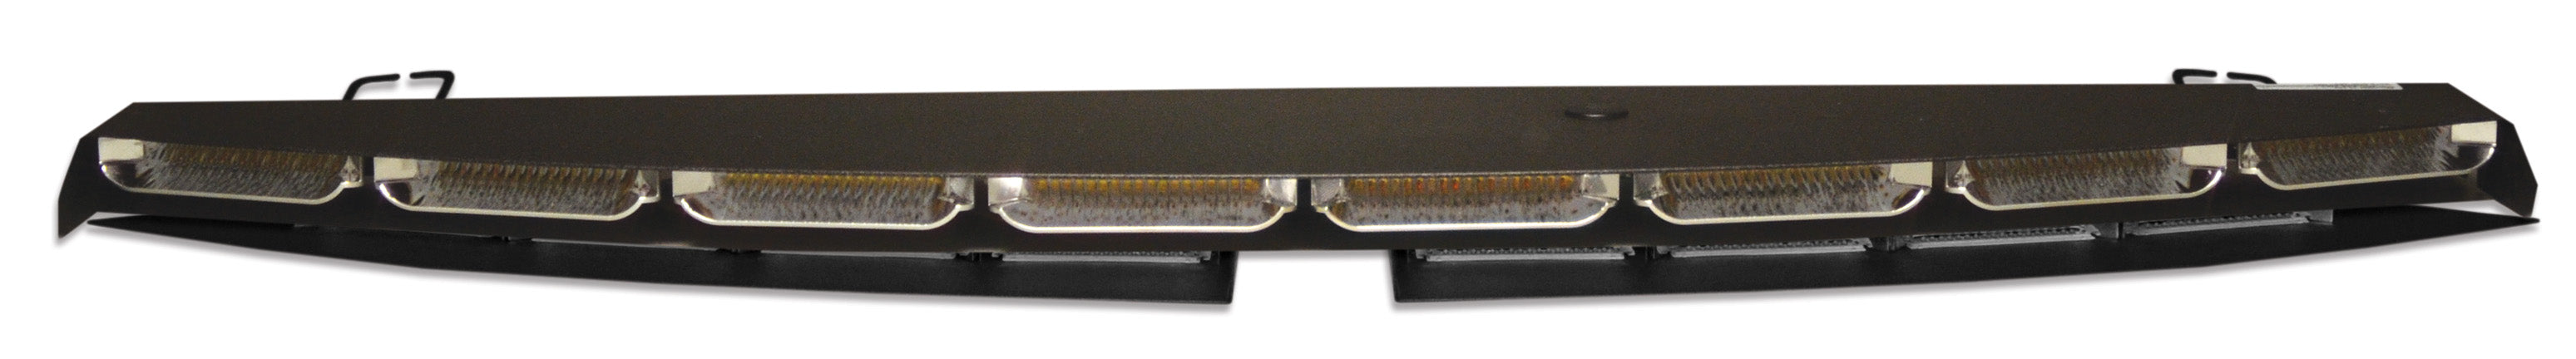 NFORCE REAR INTERIOR LIGHTBAR - RED/BLUE/AMBER - DODGE CHARGER